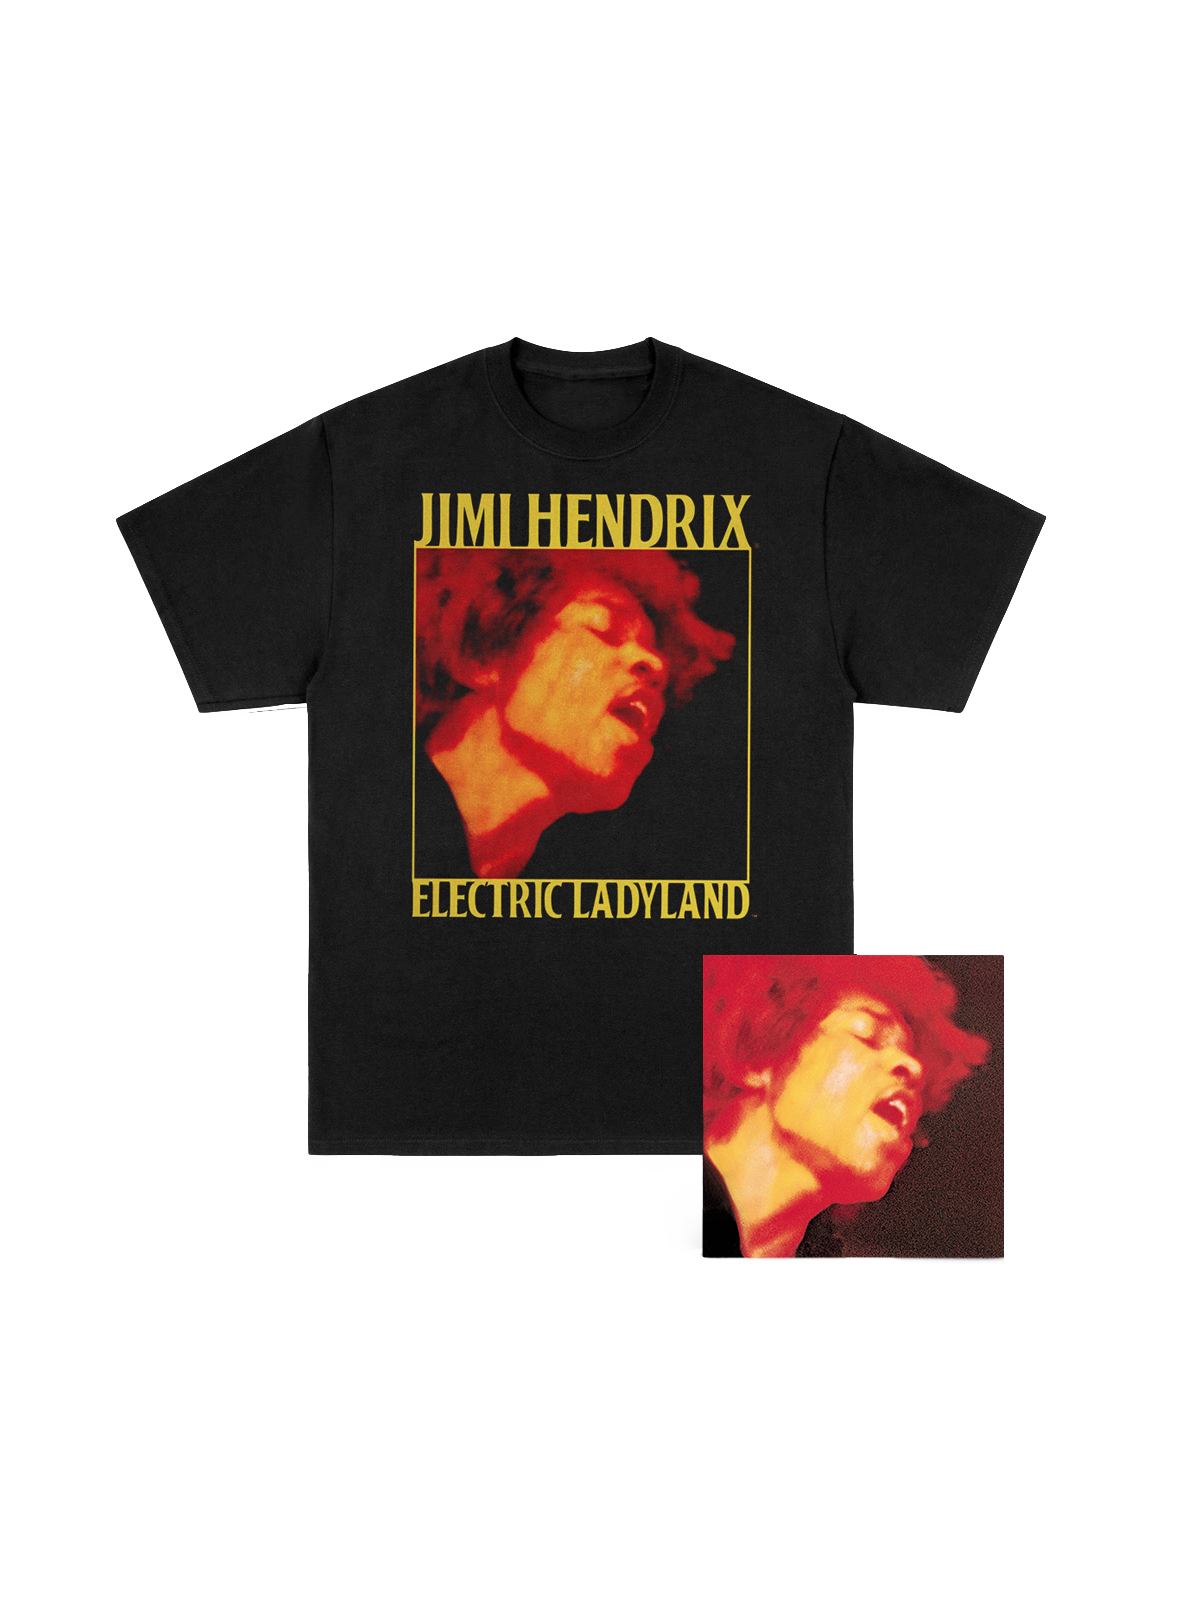 Electric Ladyland Tee + Album